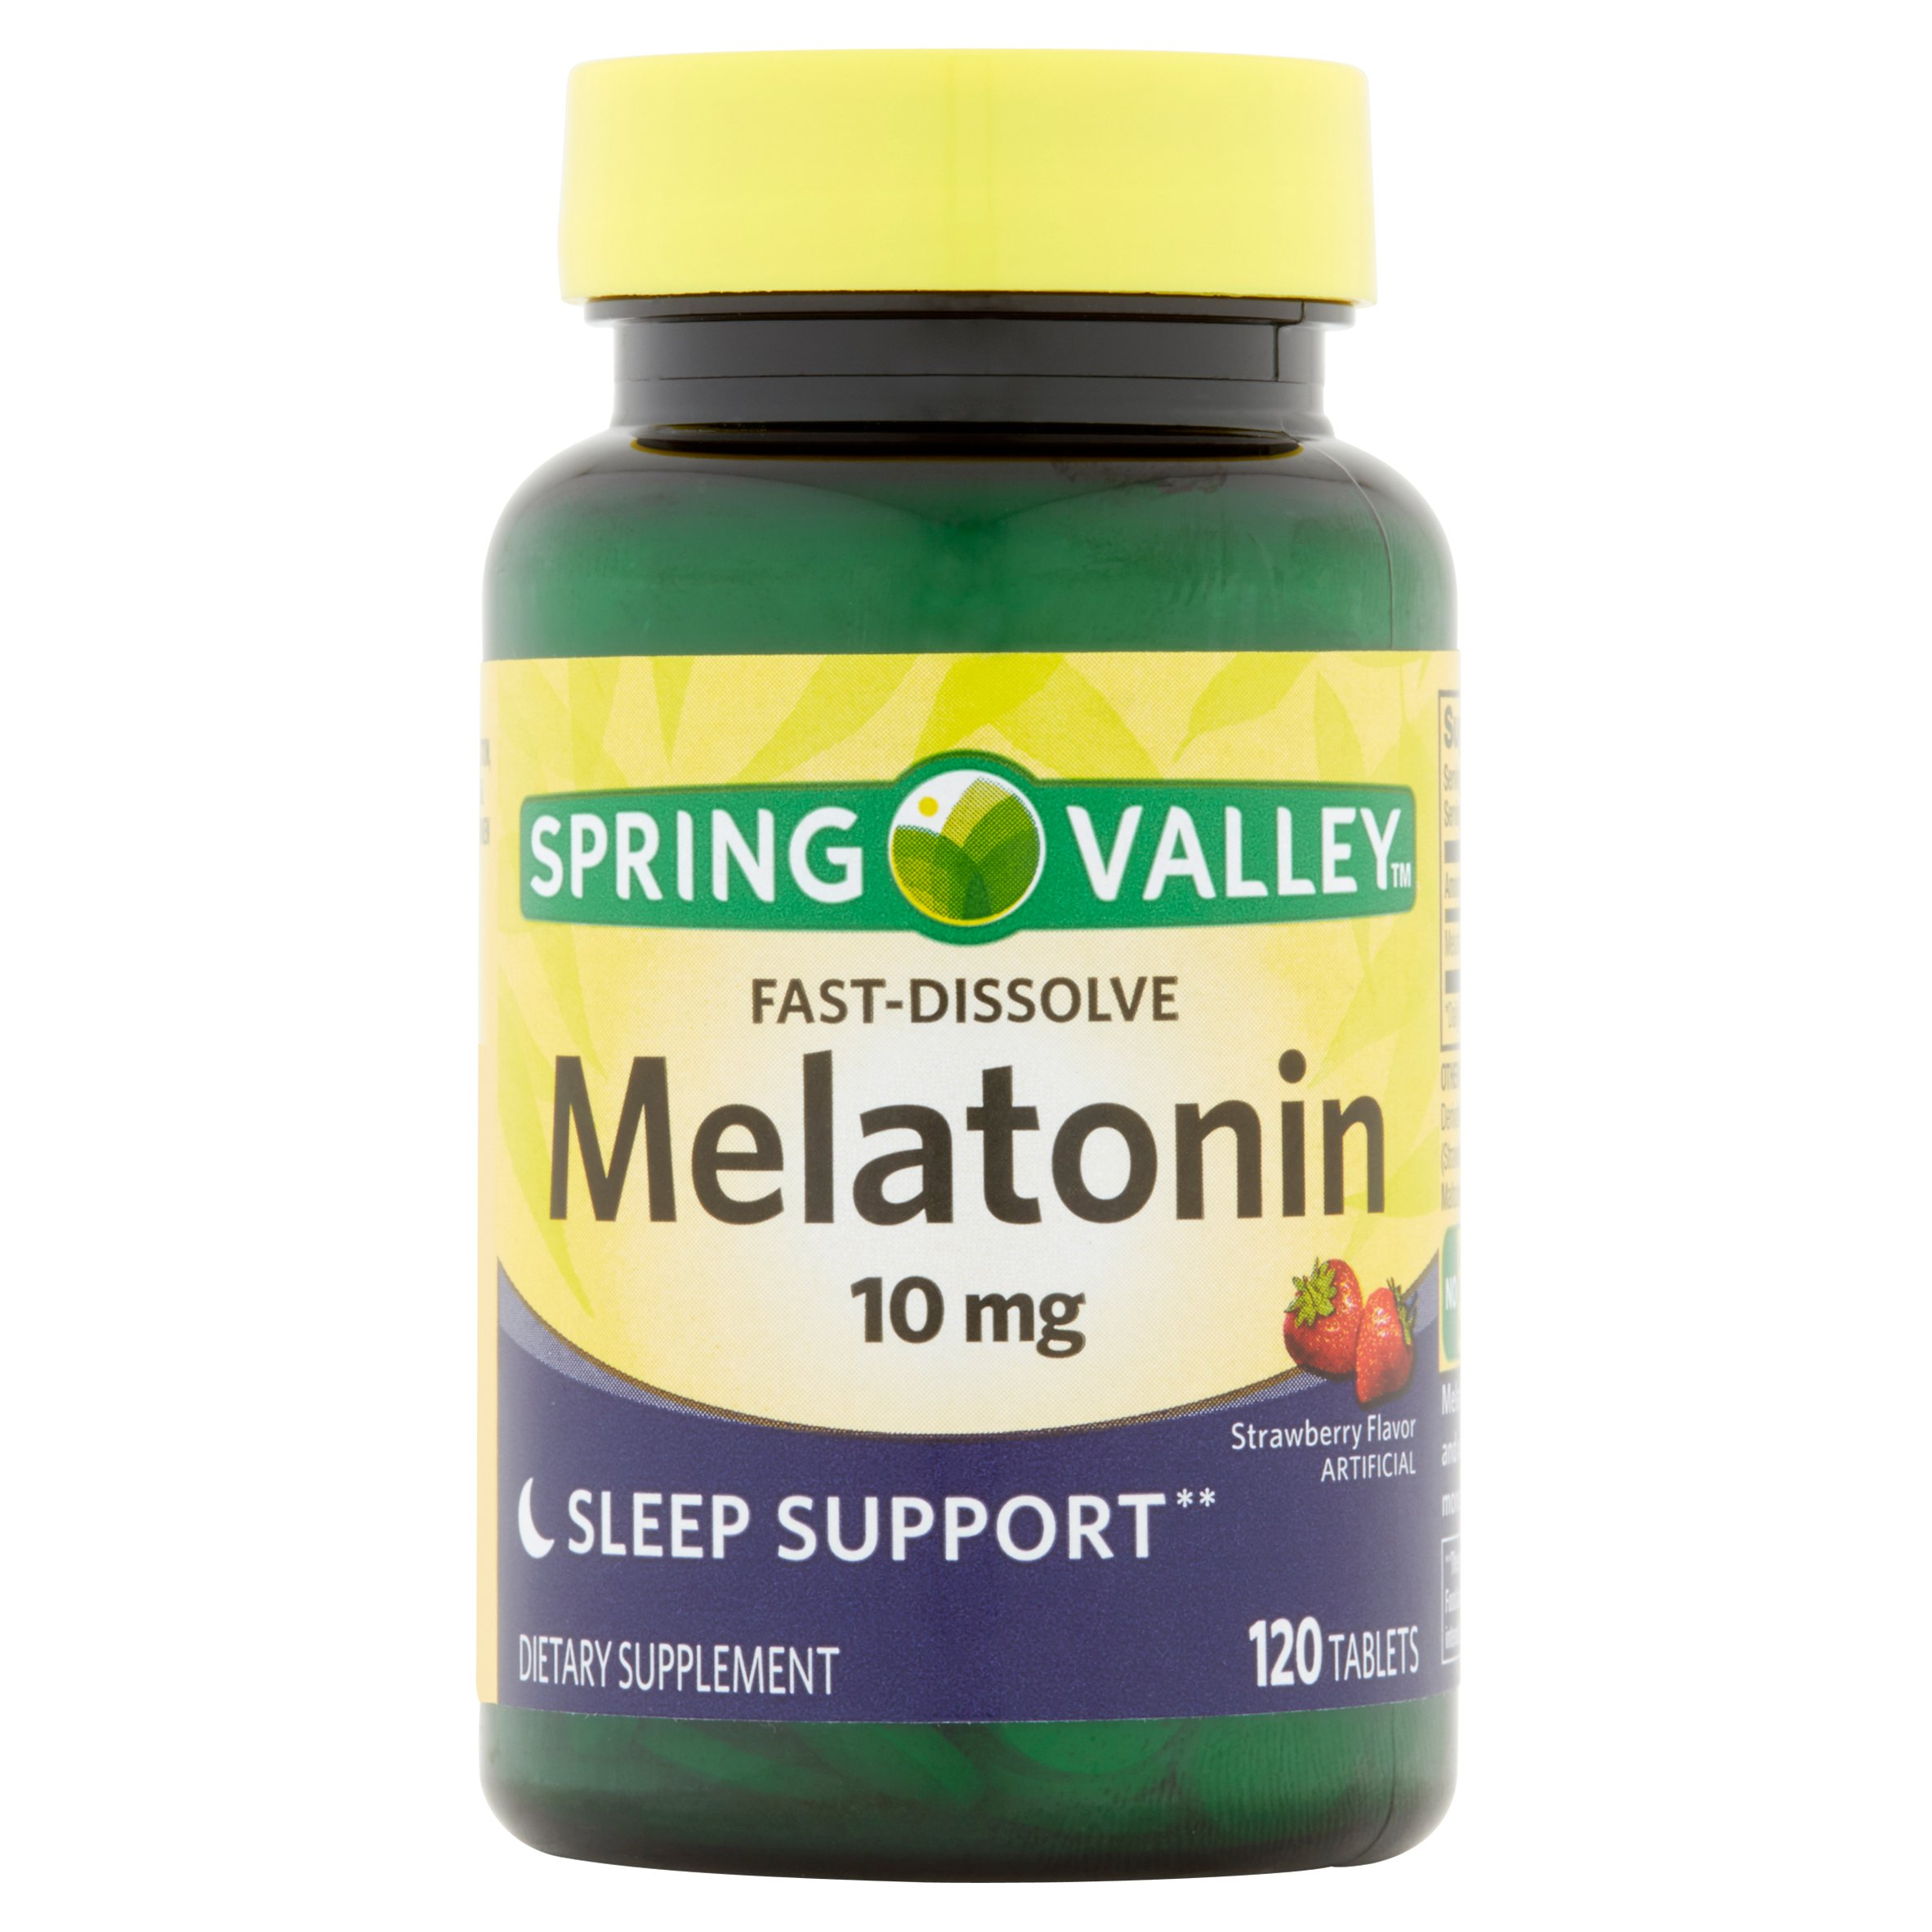 Spring Valley Melatonin Fast Dissolve Tablets, 10 mg, 120 Ct